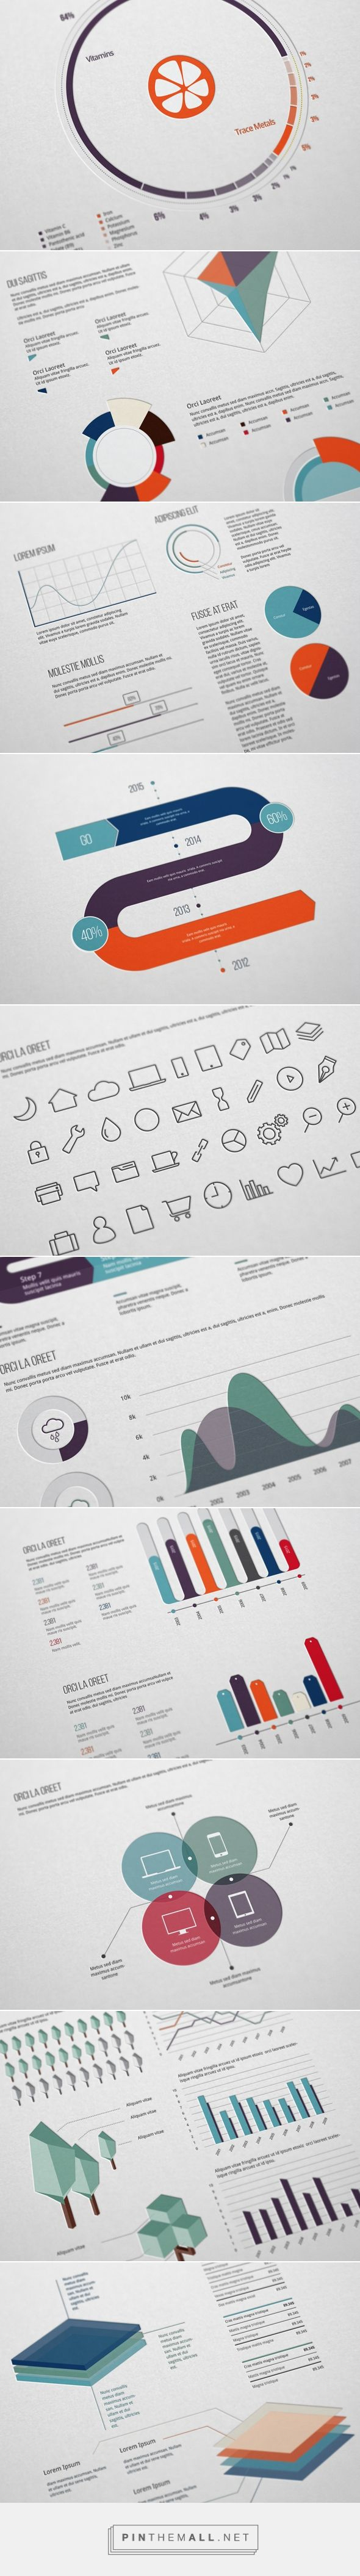 Ultimate Infographics Pack on Behance - created on 2014-12-29 11:17:32